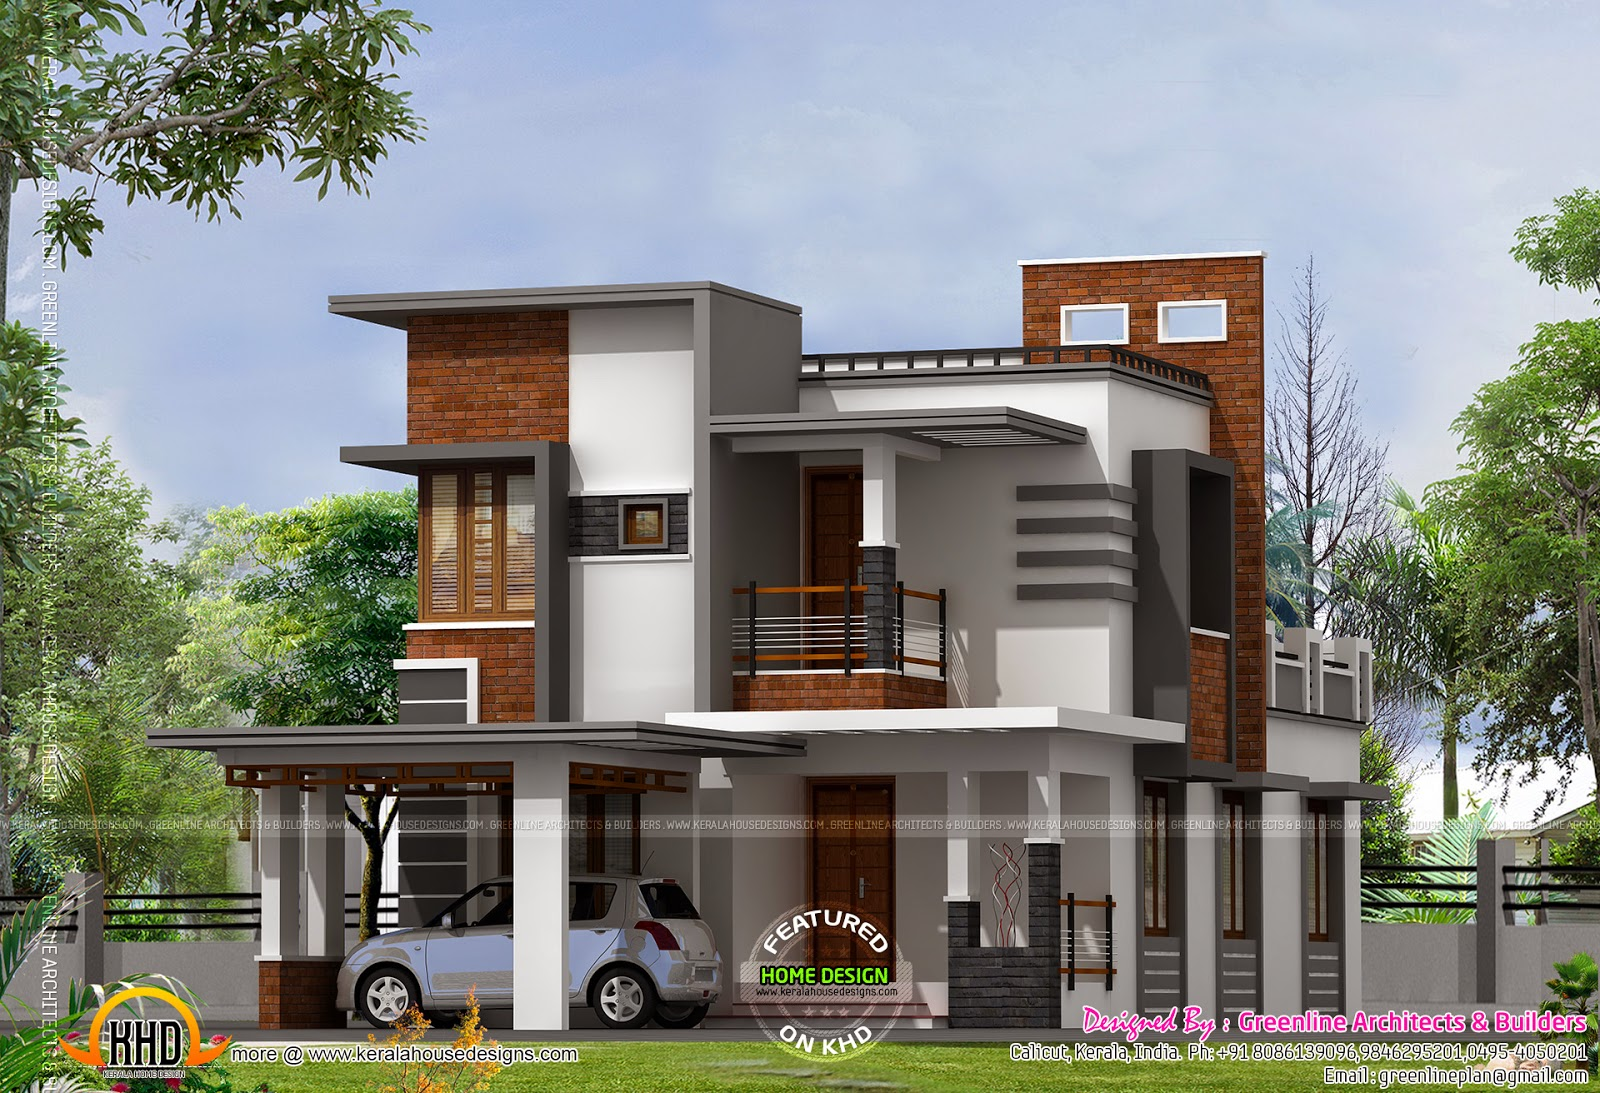 Low cost contemporary house kerala home design and floor for Modern homes prices